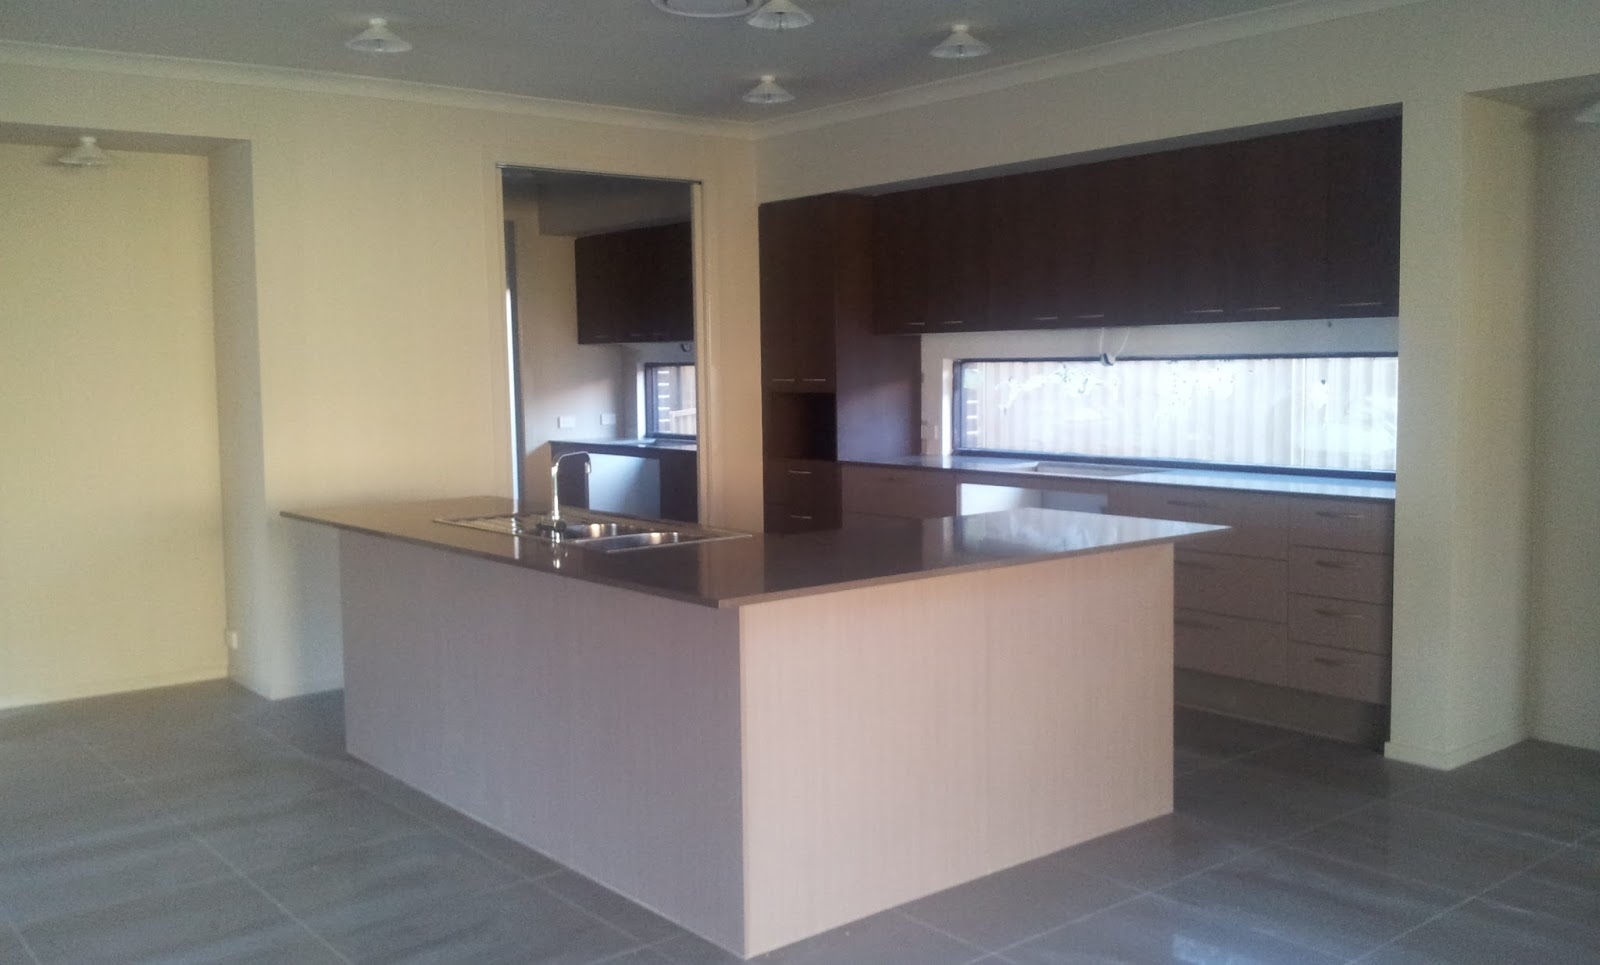 Our metricon nolan 41 journey kitchen and vanity cabinetry - From Dining